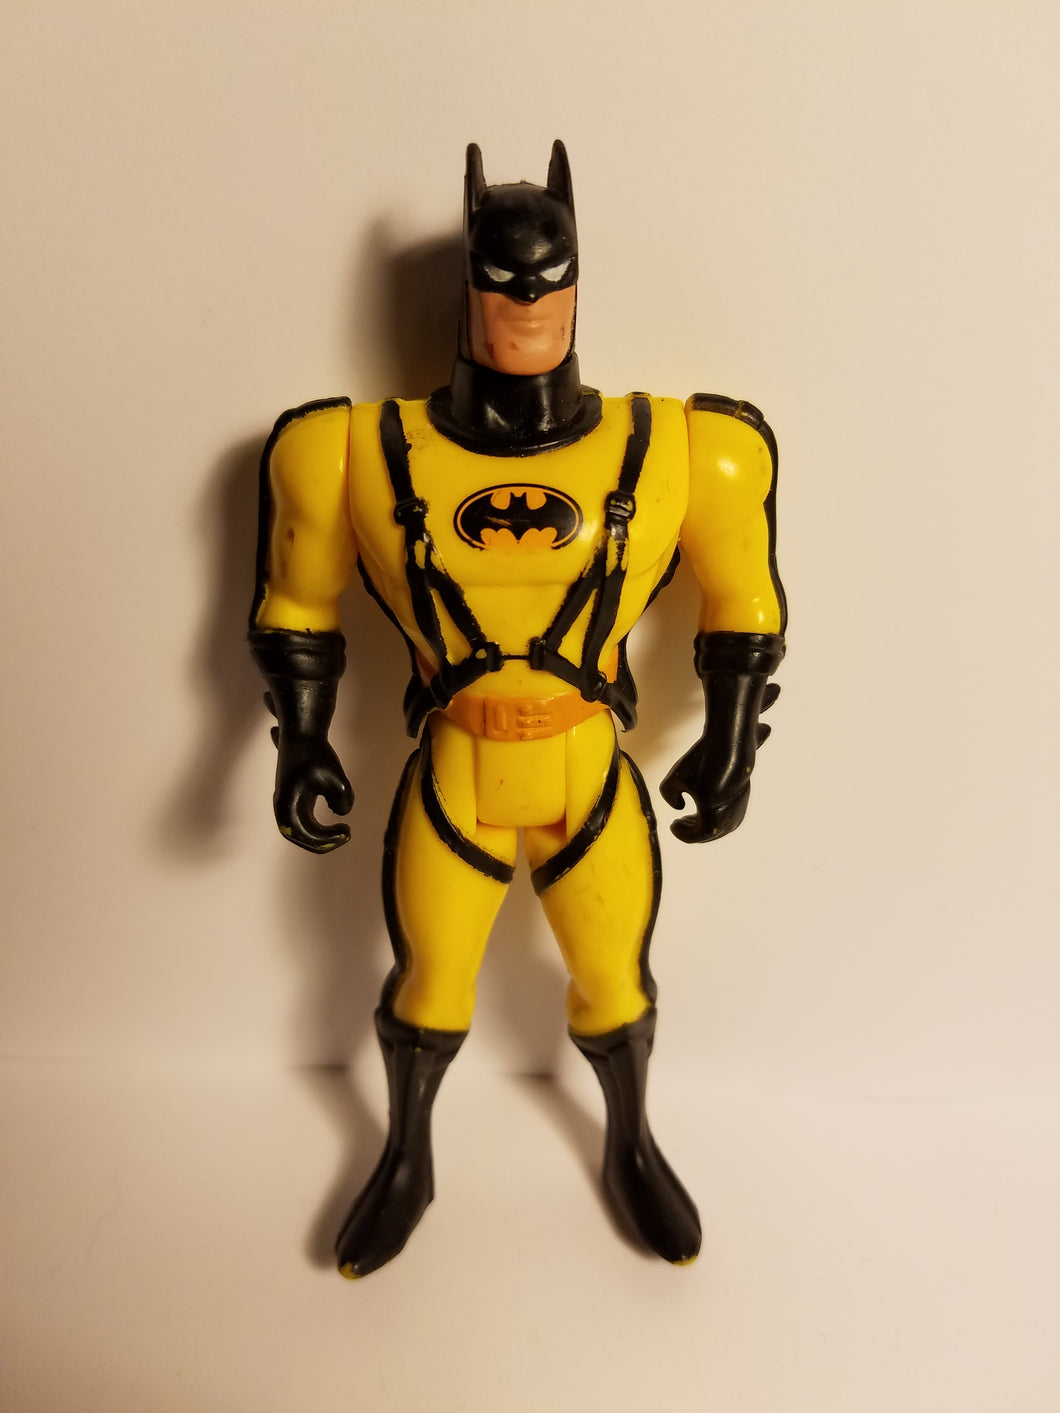 1990 Loose Yellow Suit Batman Action Figure